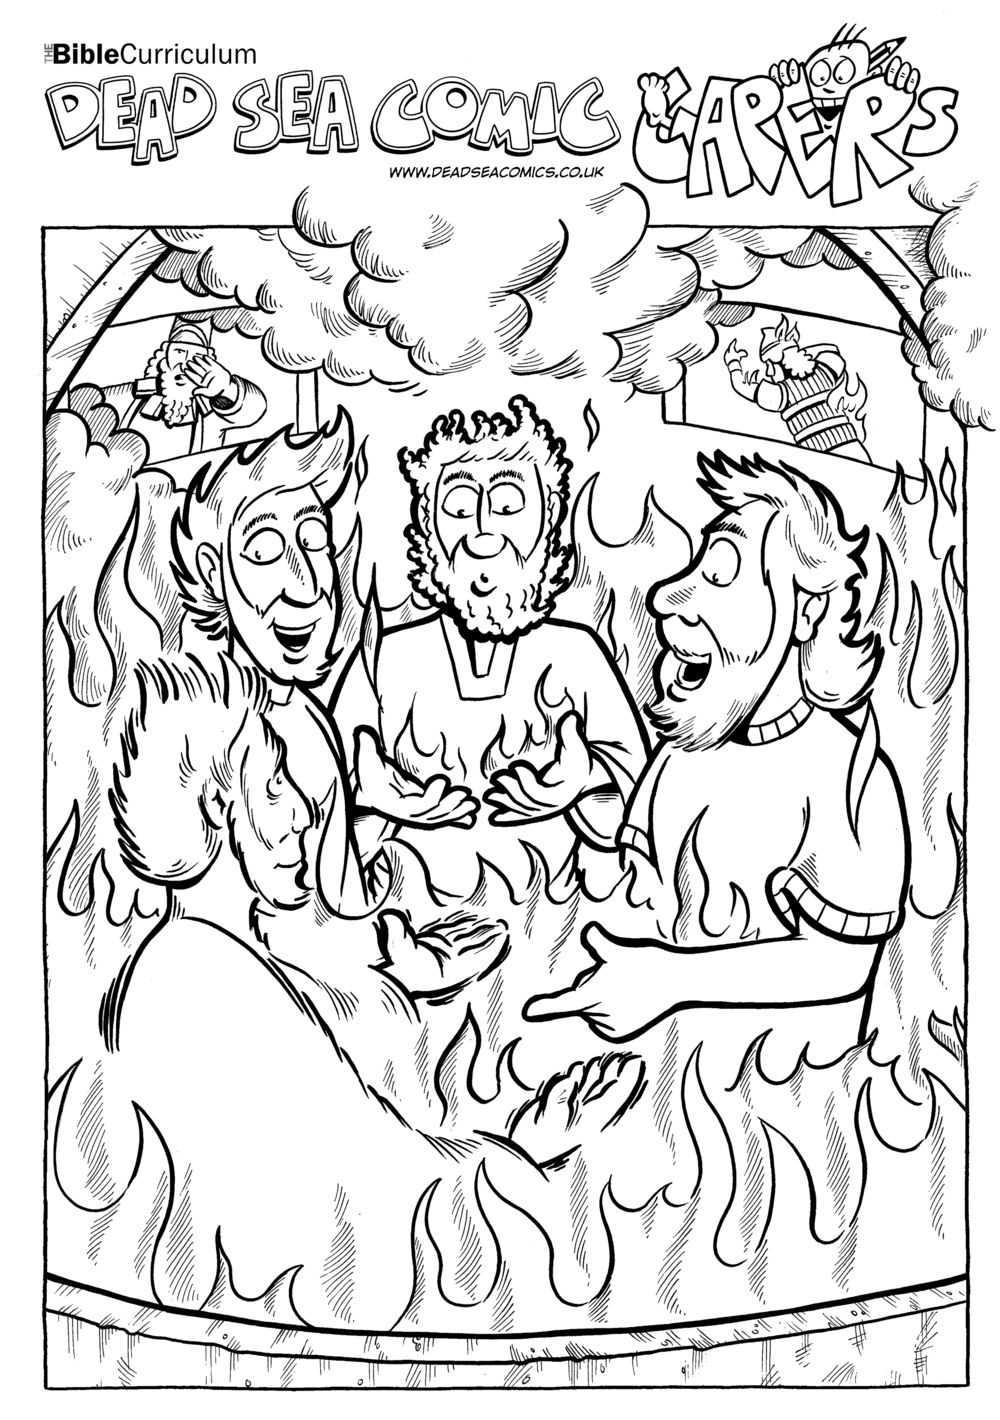 206 and 207_The giant statue and four men in the fire.png